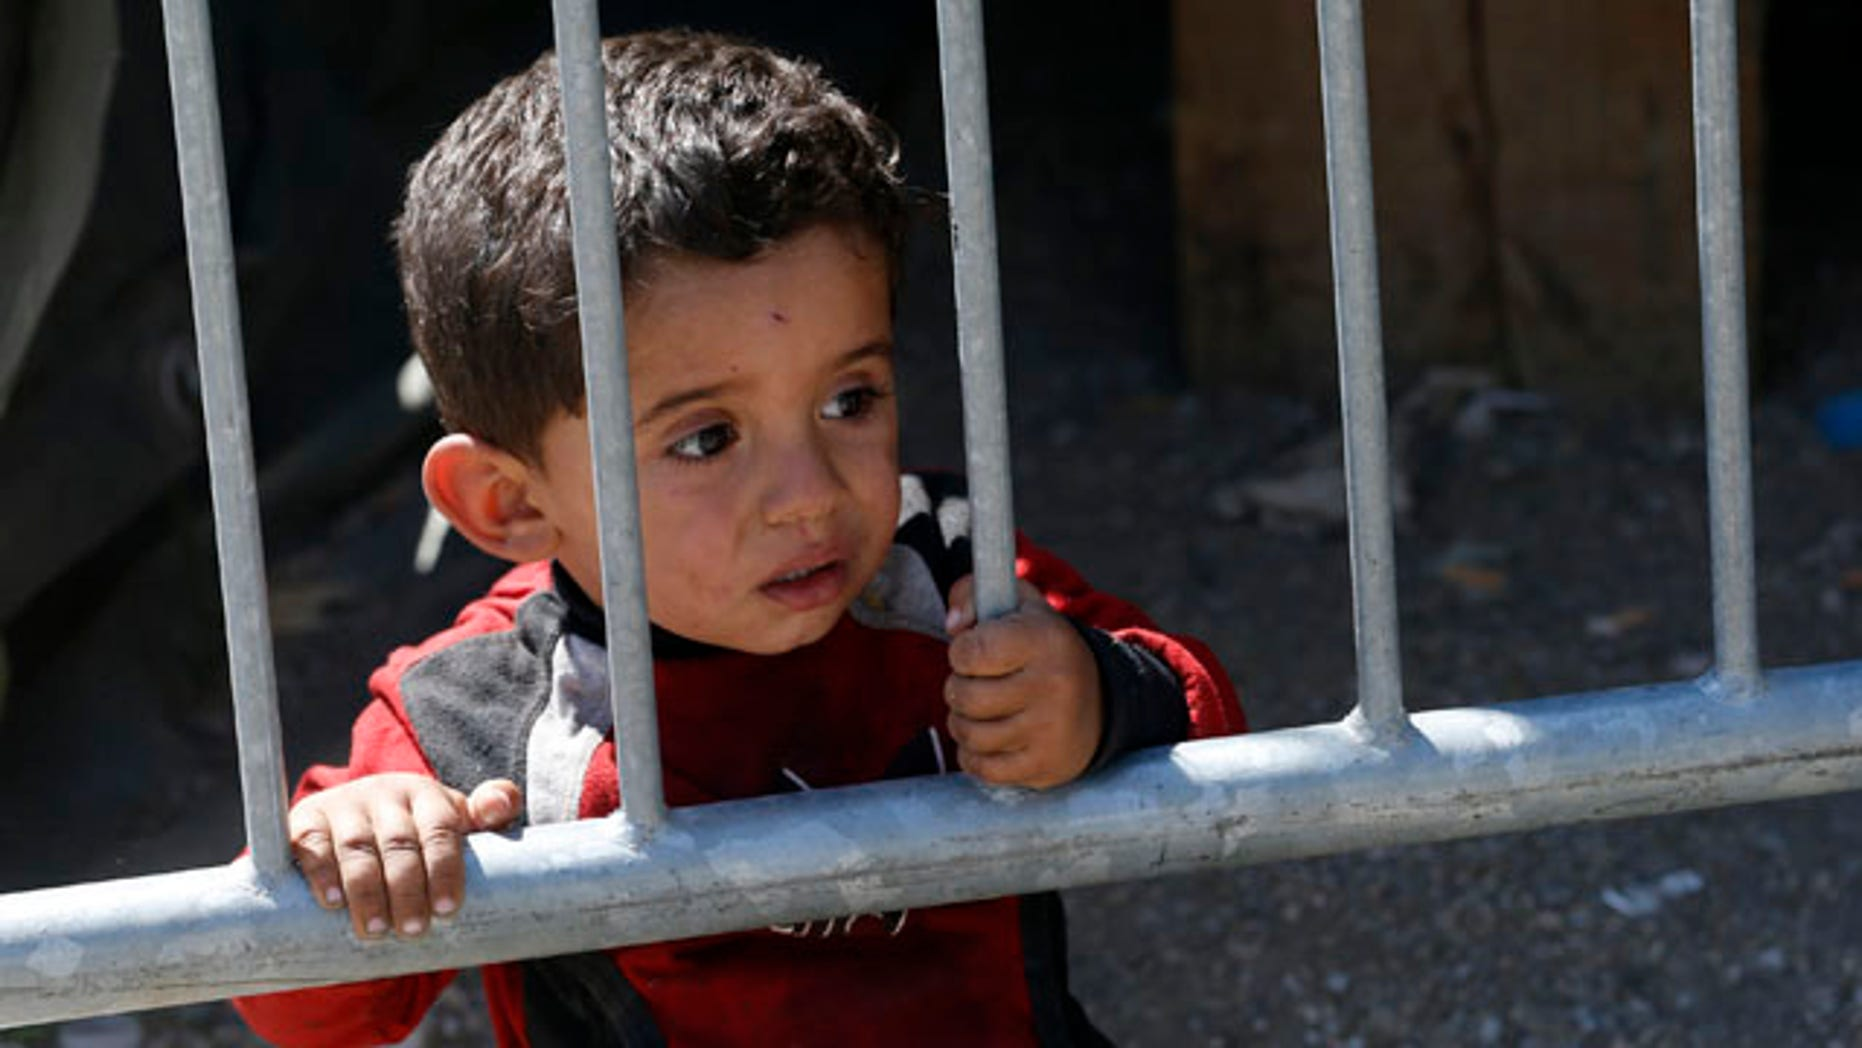 Aug. 24, 2015: A migrant boy looks through fence in a migrant processing center in the southern Serbian town of Presevo. (AP Photo/Darko Vojinovic)